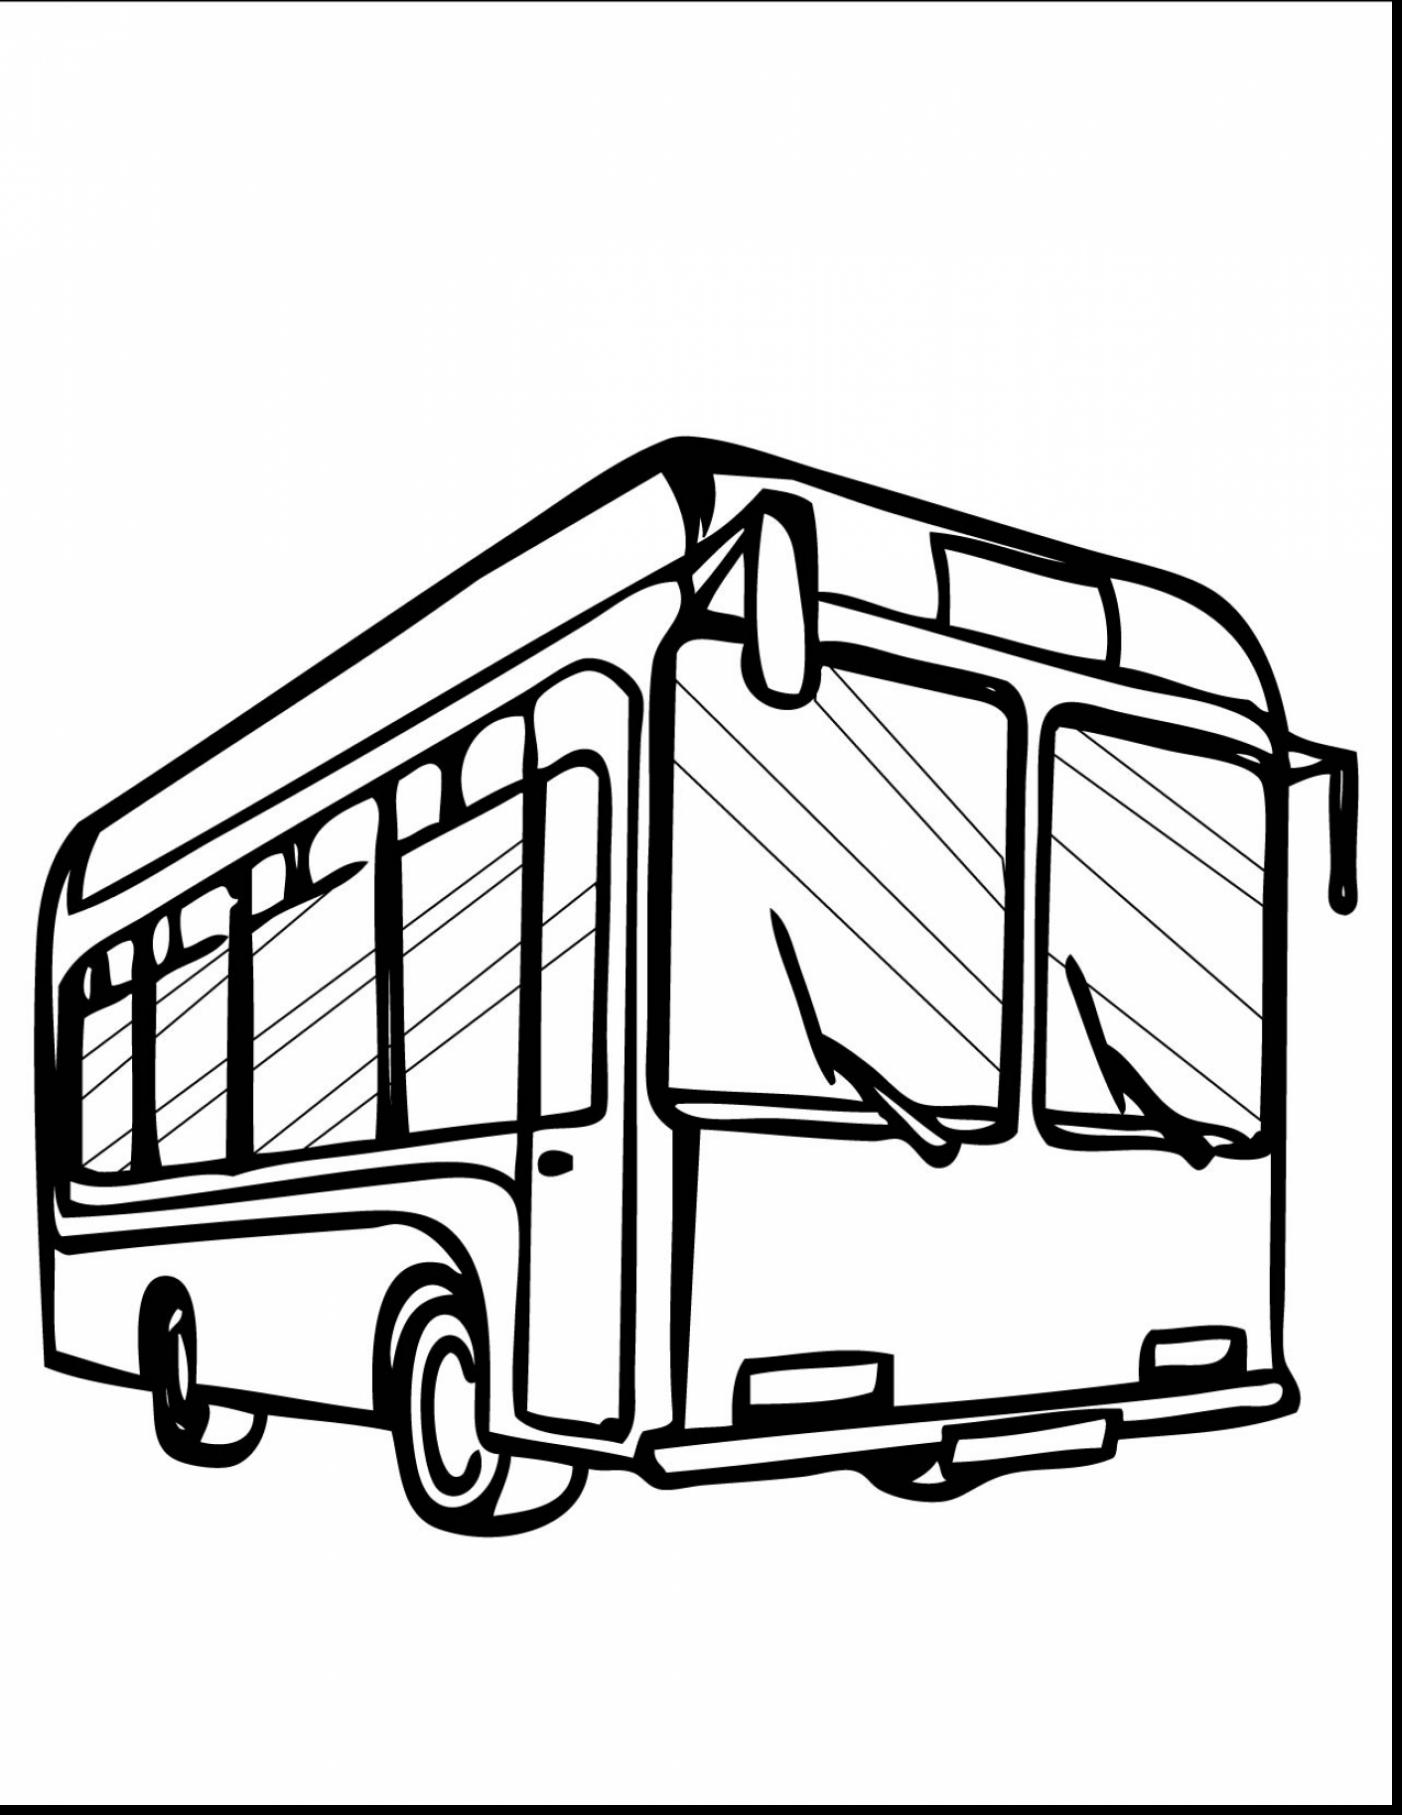 1402x1815 Terrific Bus Outline Clip Art With School Bus Coloring Page